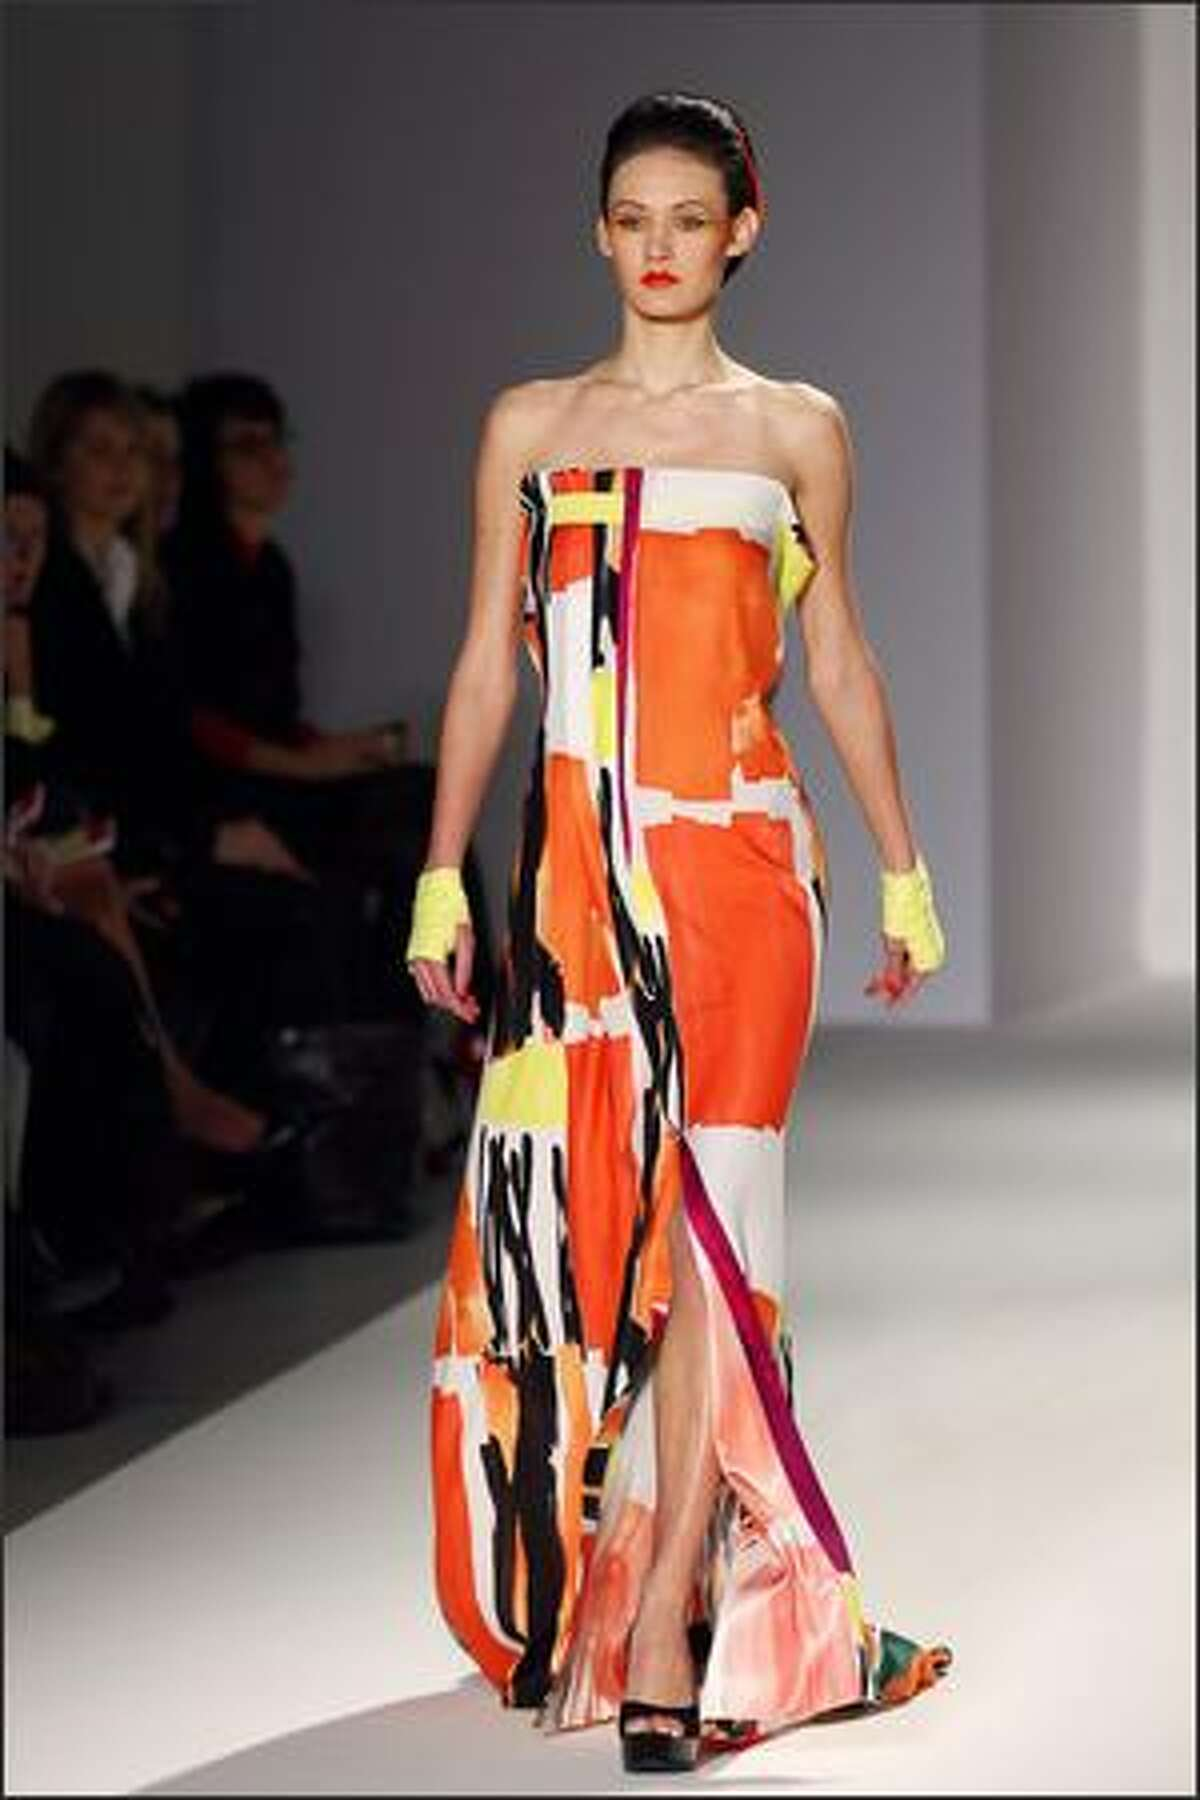 A model presents a creation by Lefranc.Ferrant during the spring/summer 2008 haute couture collection shows in Paris.